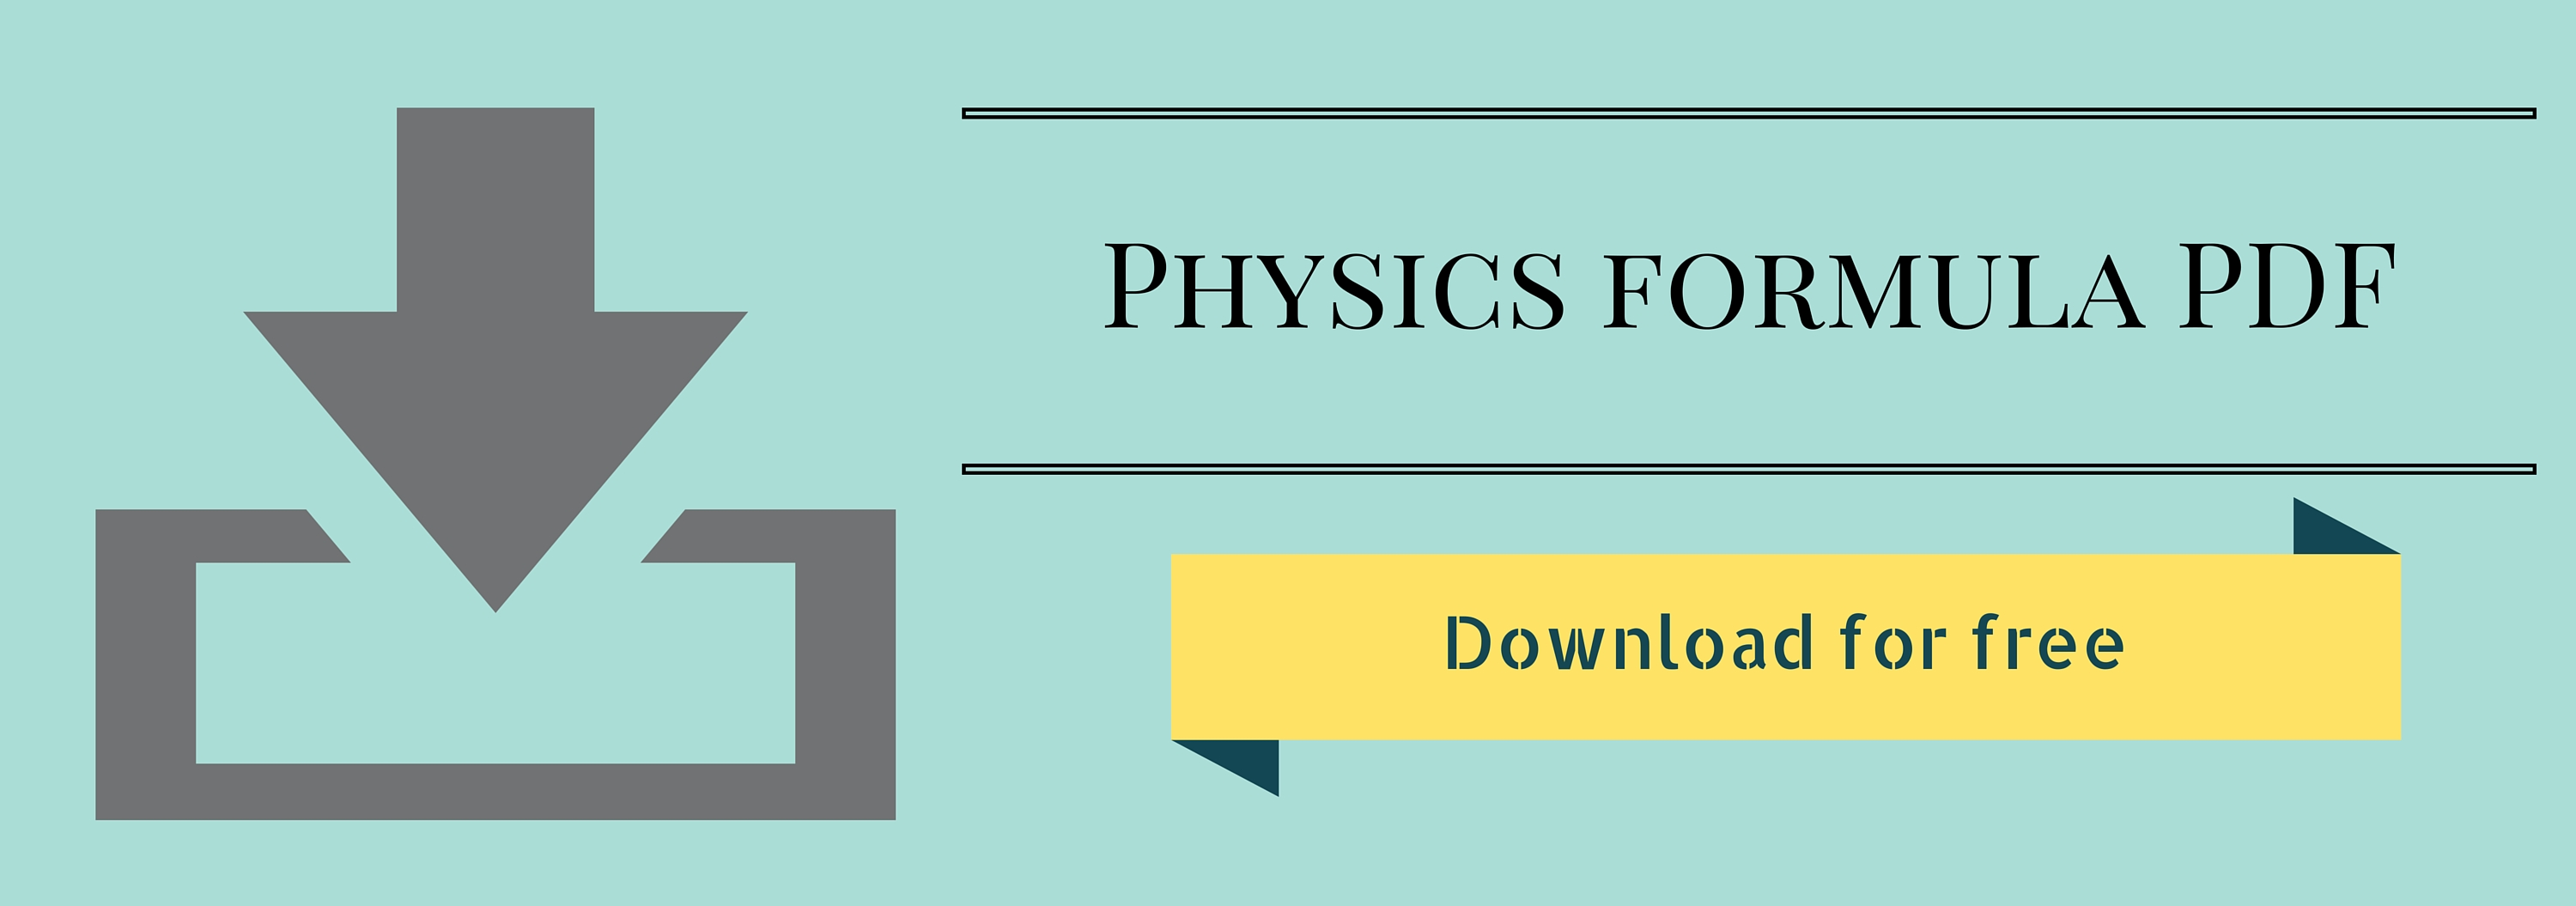 physic pdf - Bare.bearsbackyard.co